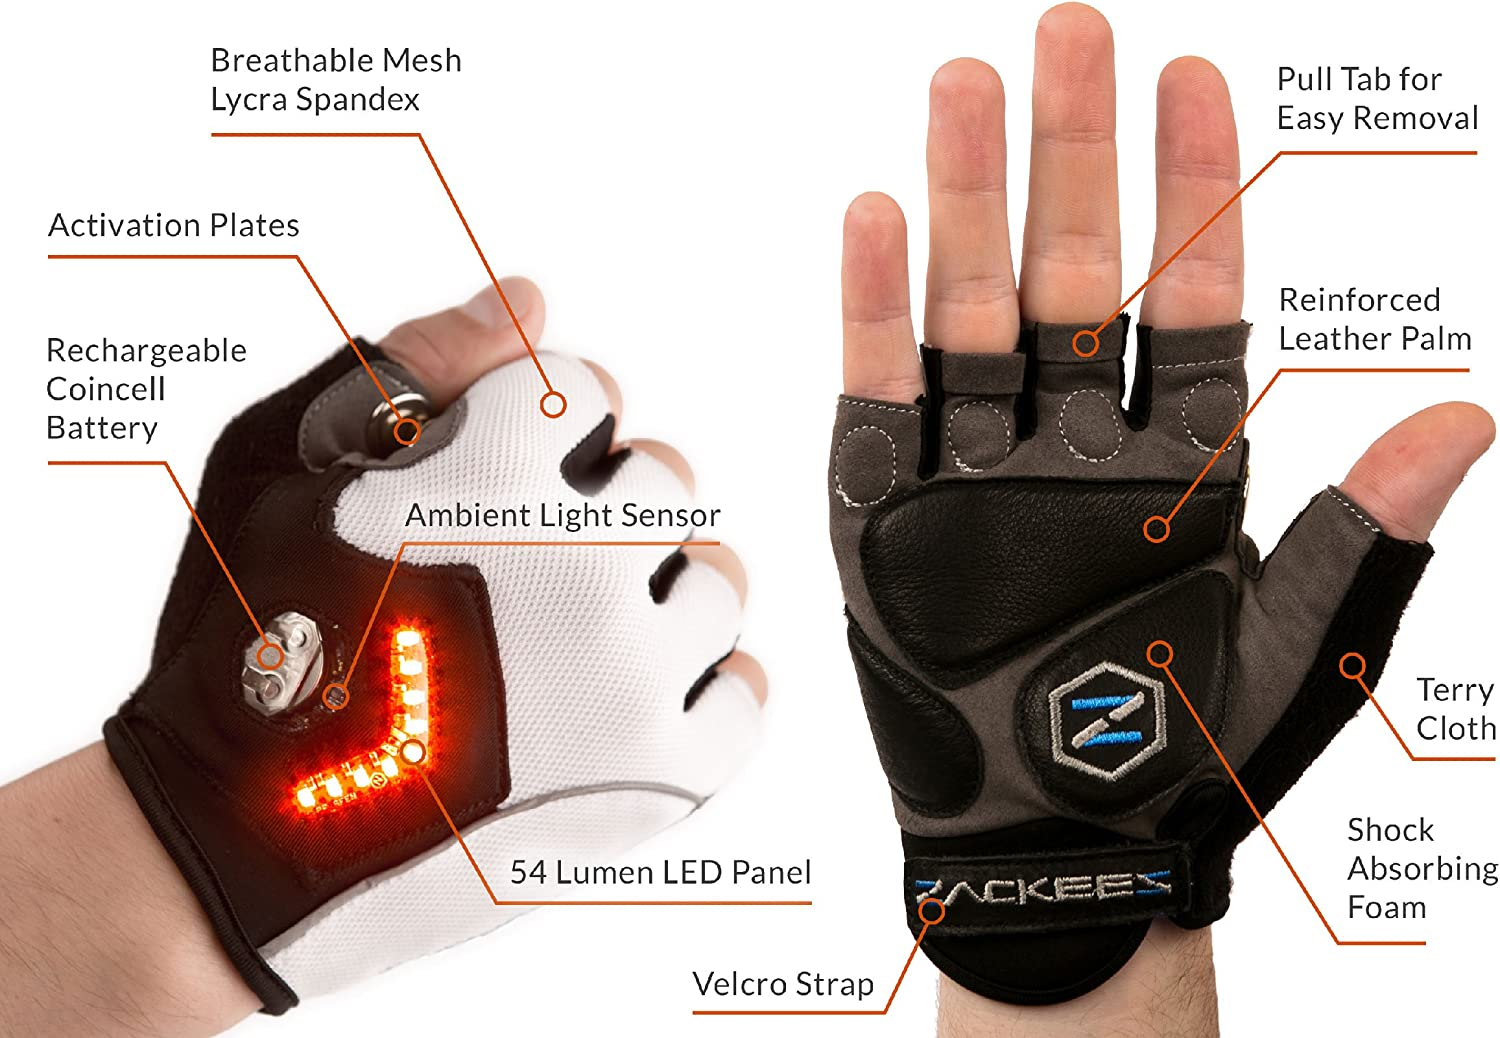 Leather Palms Zackees Award Winning LED Turn Signal Cycling Gloves with 4 Rechargeable Coincell Batteries Charger